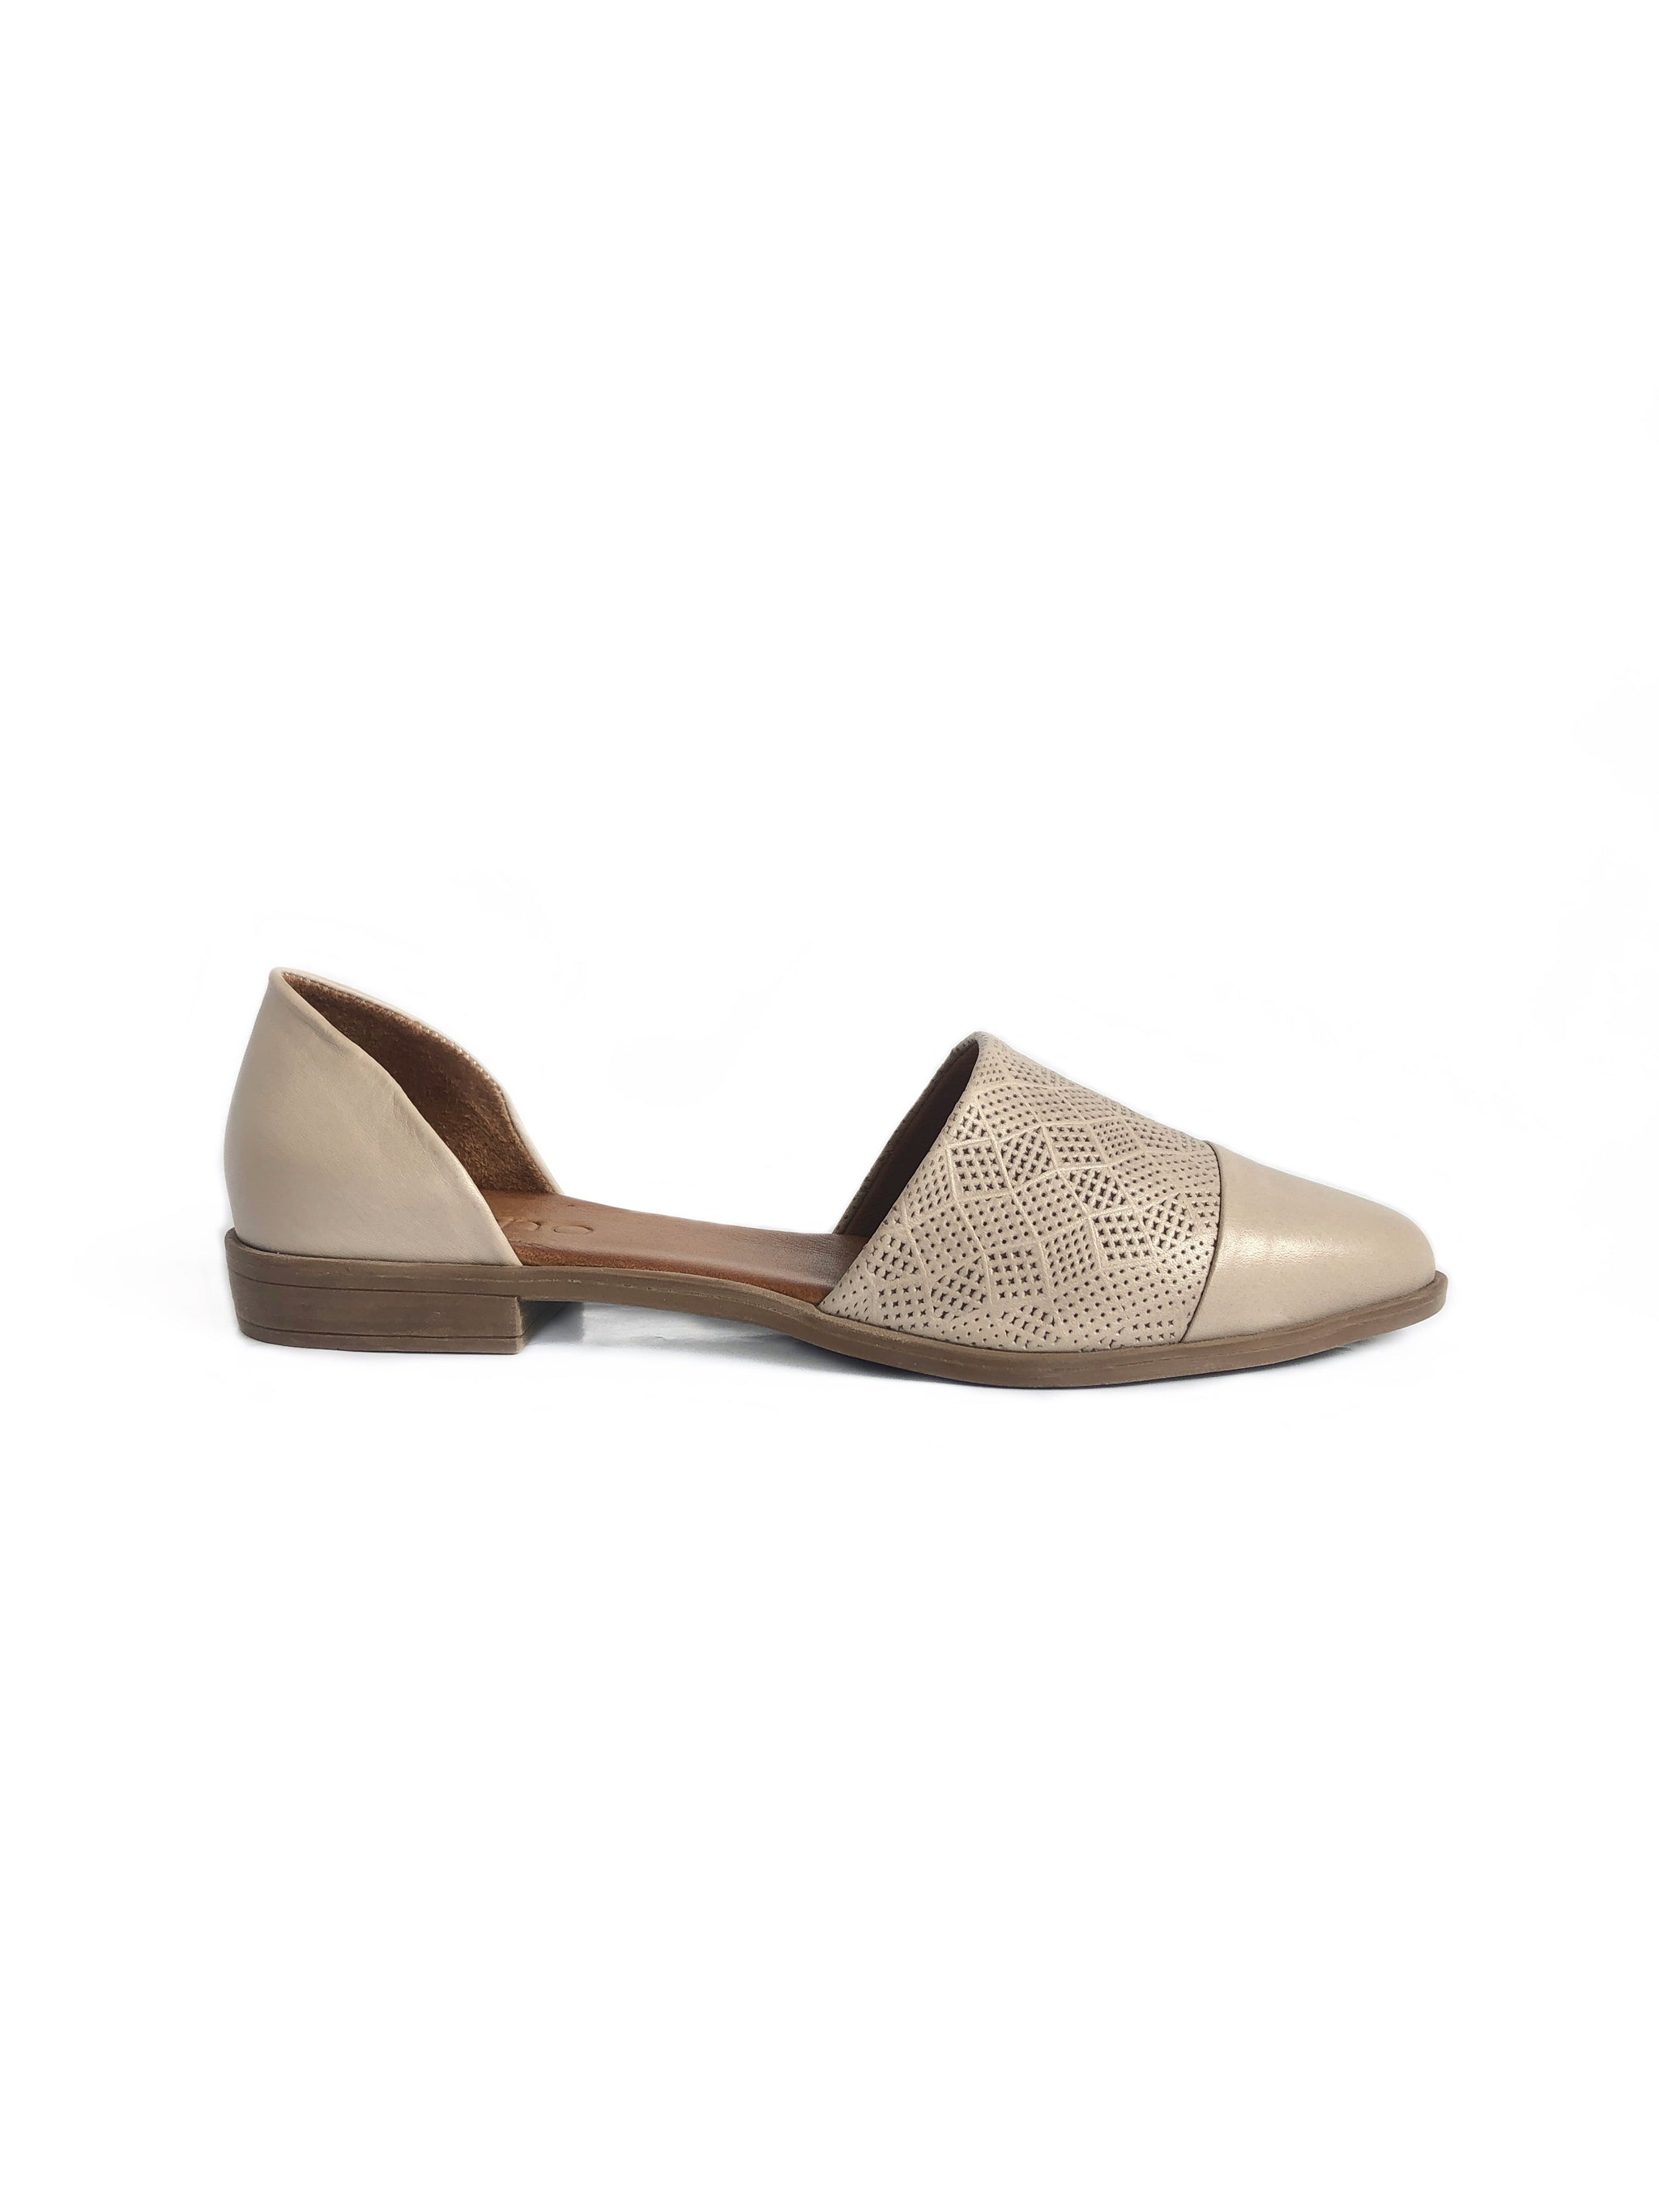 BUENO - BELLA IN LIGHT GREY LEATHER